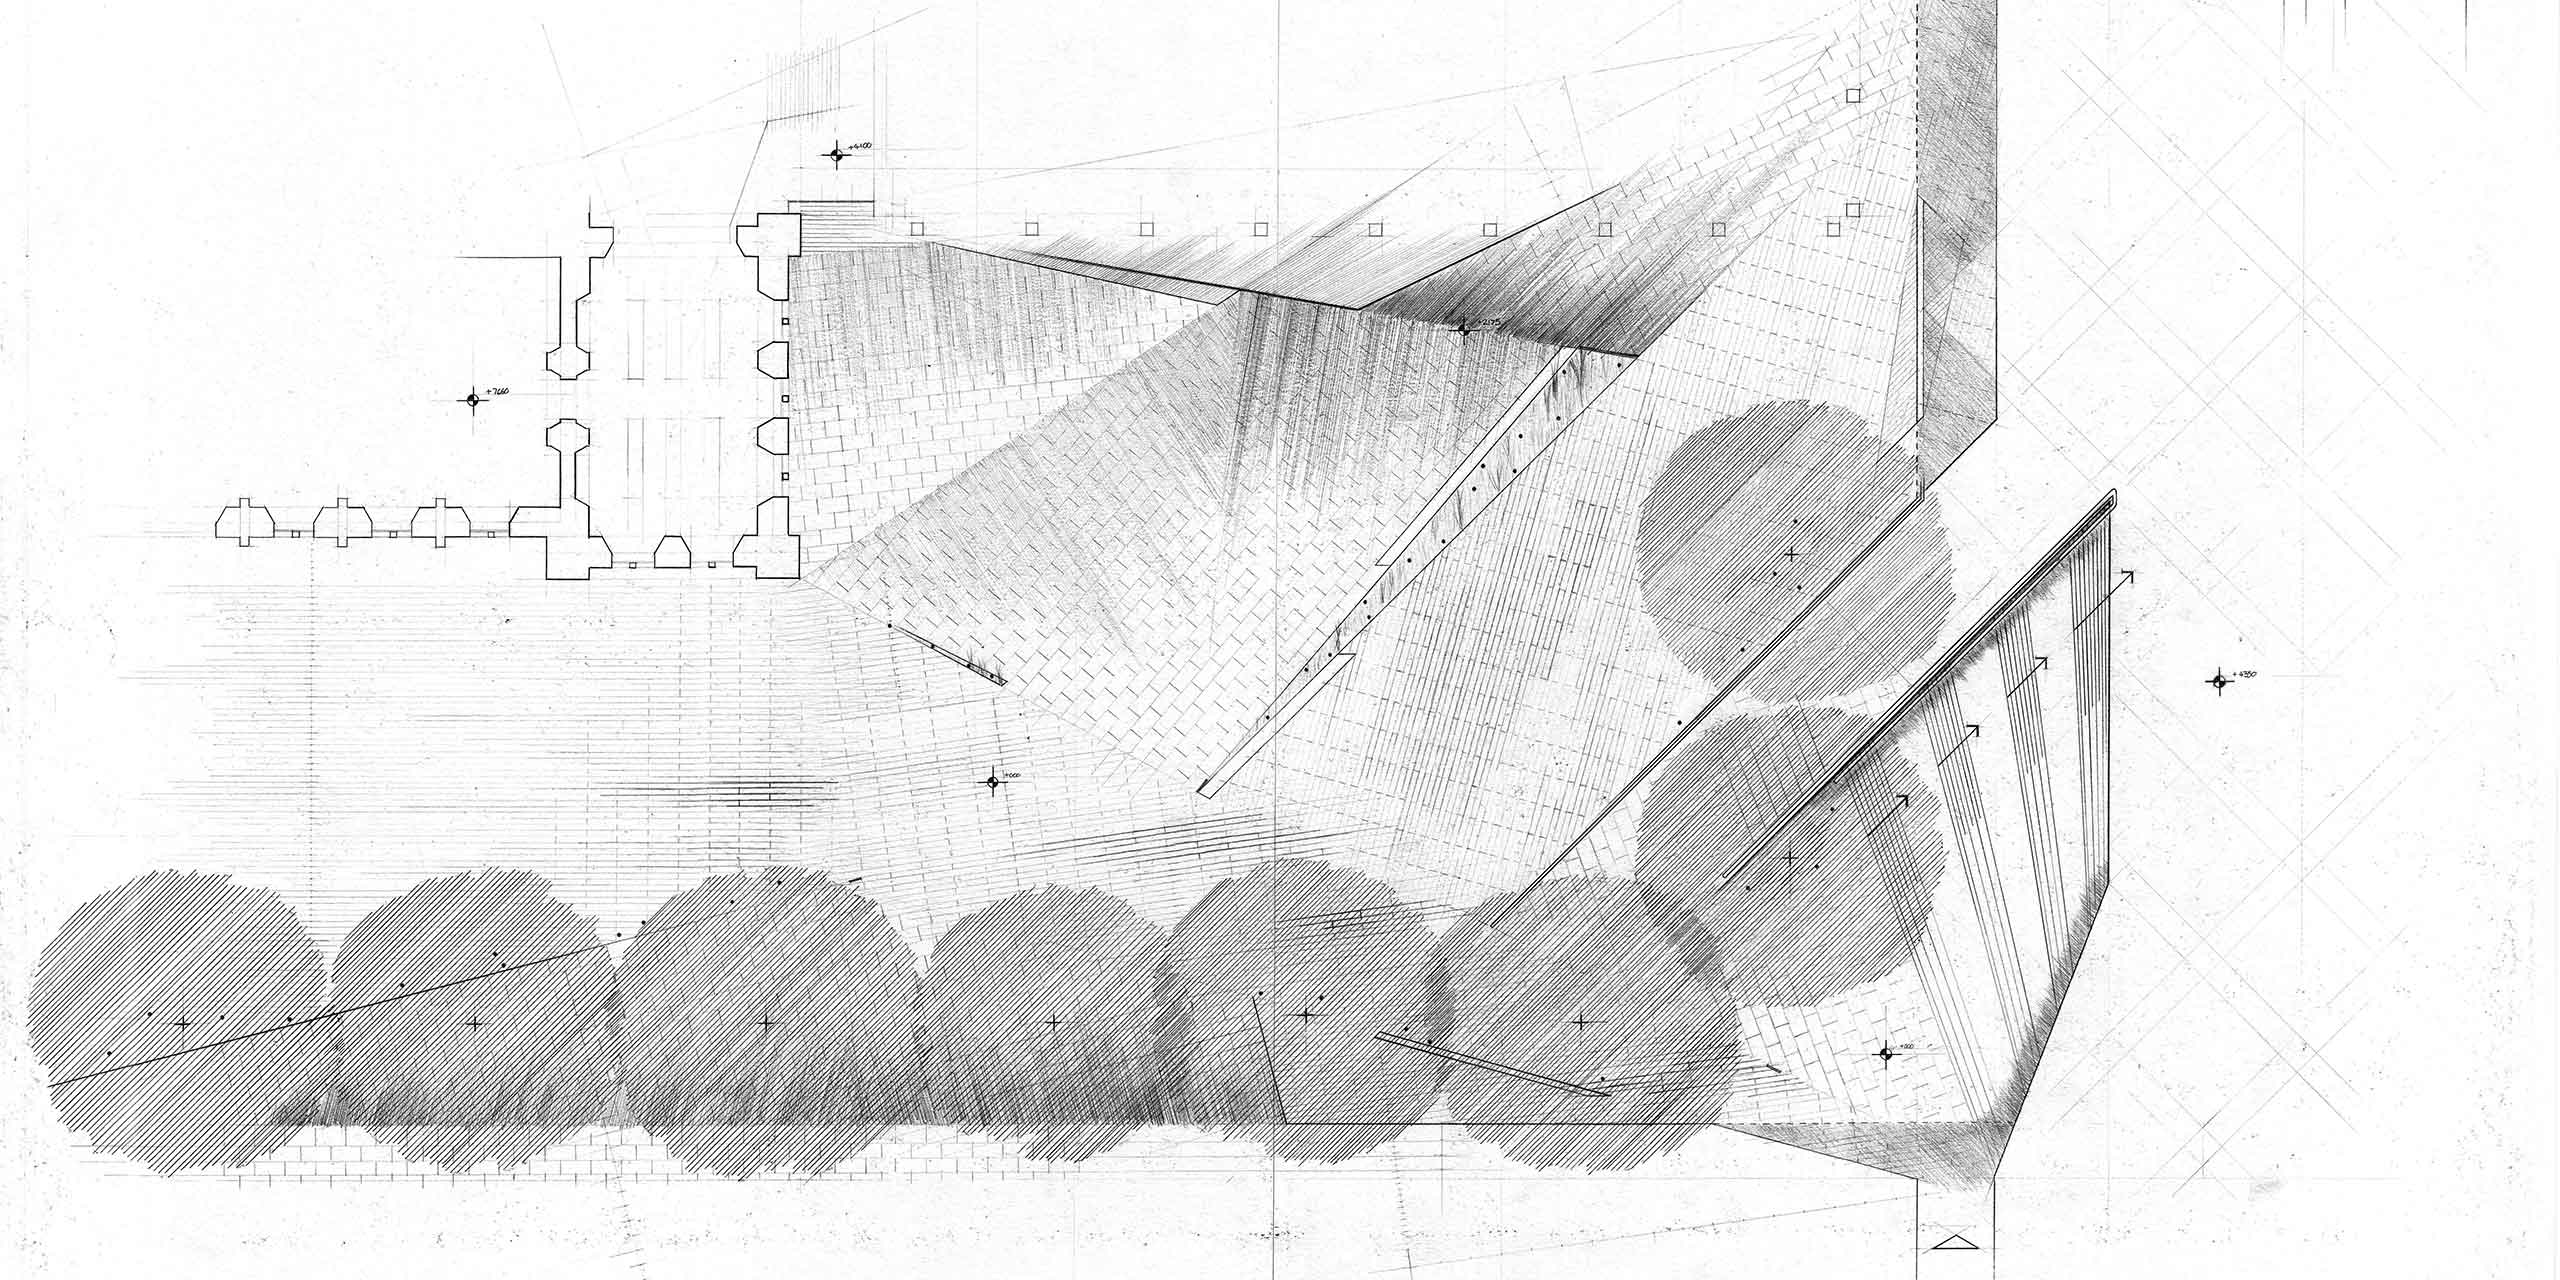 narrative hybrids museum inserted plan axo hand drawn architecture nottingham samuel critchlow sam